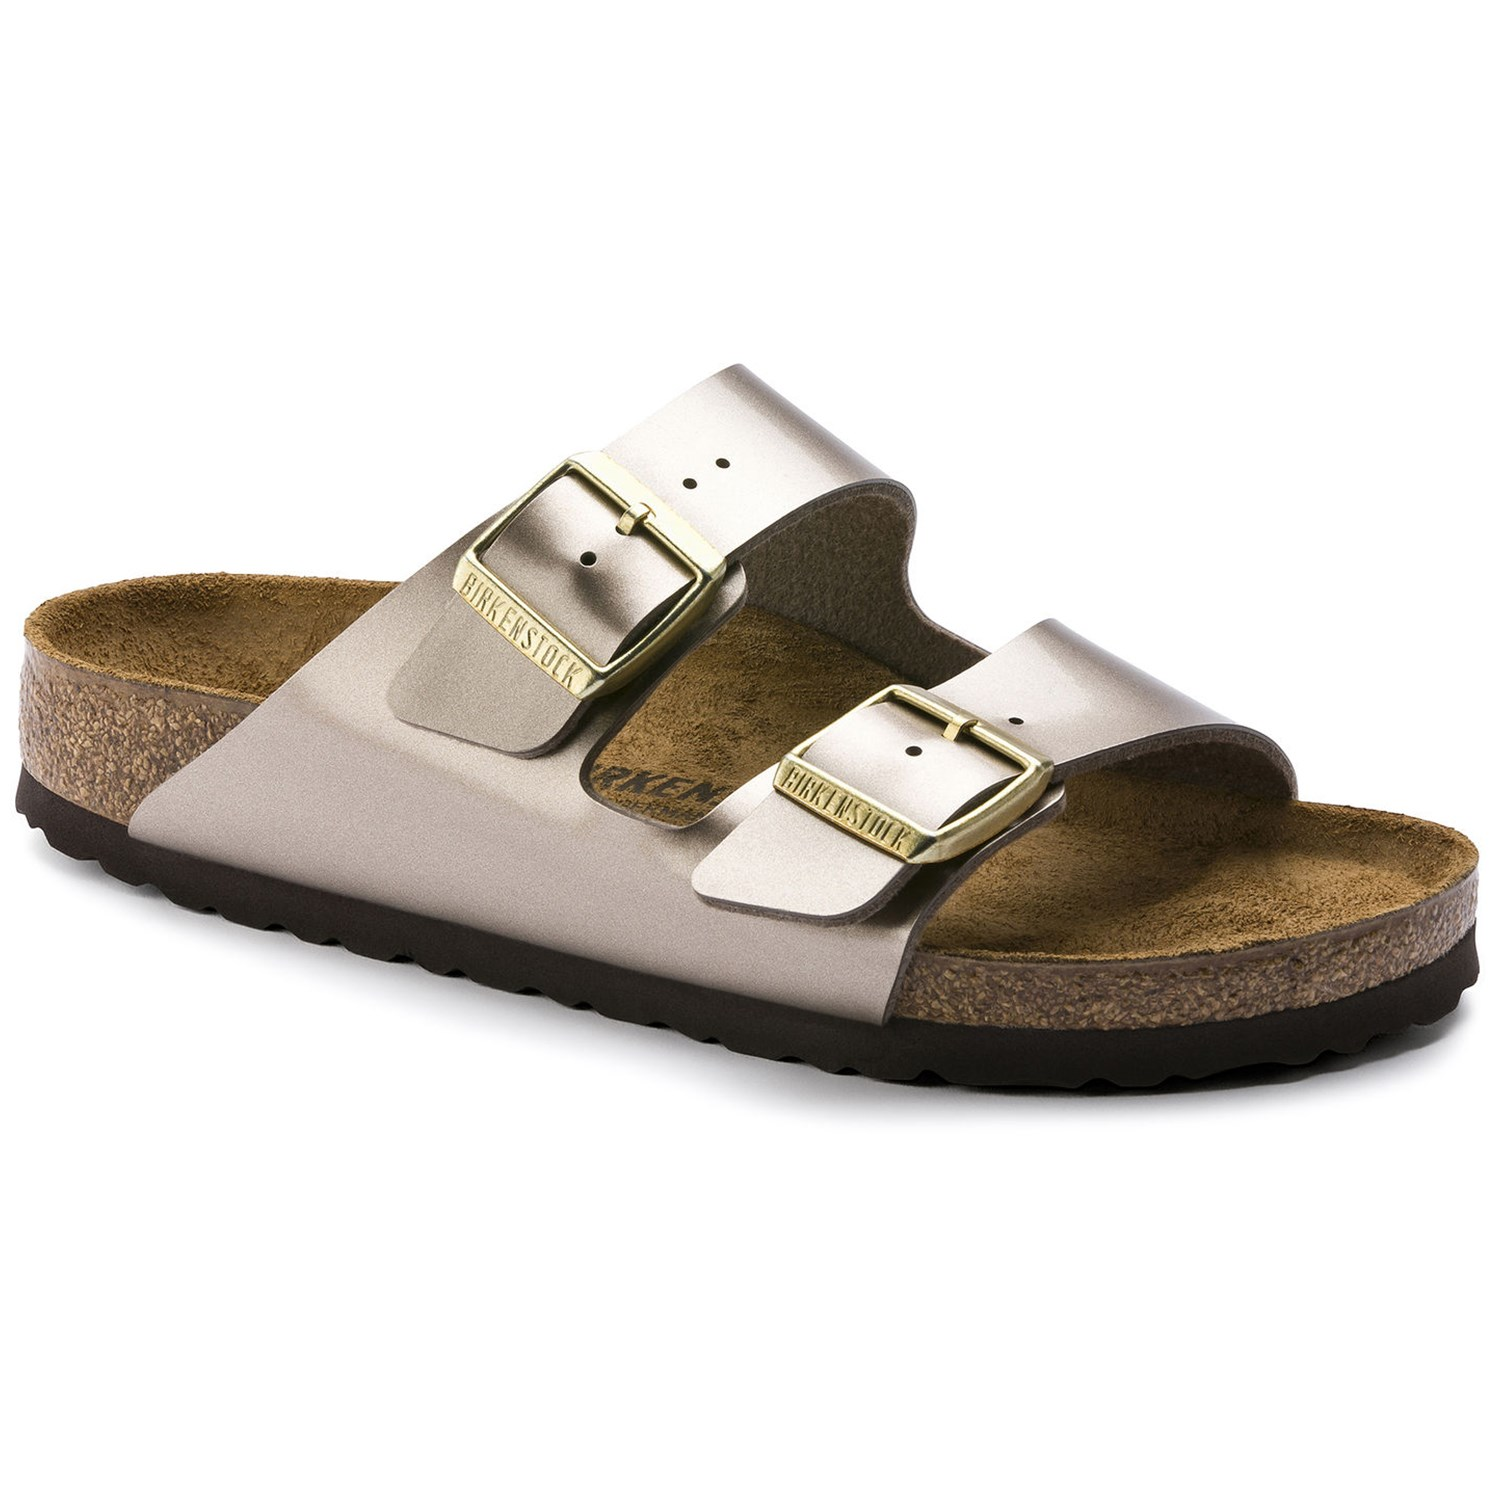 Birkenstock Arizona Birko Flor Sandals Women's